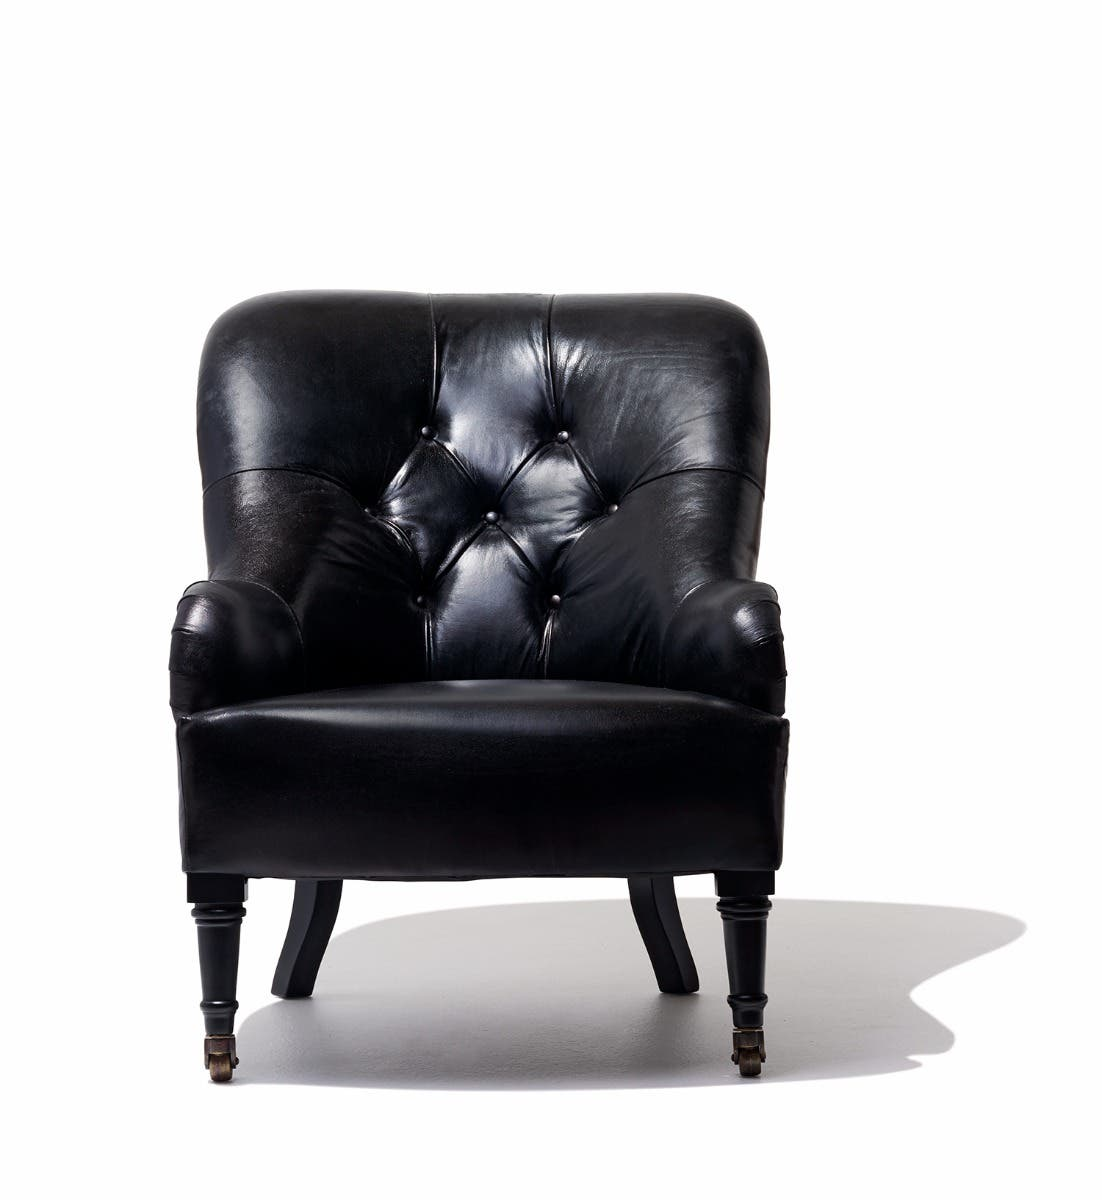 Industry West Modern And Industrial Chairs And Furniture - Club chairs furniture